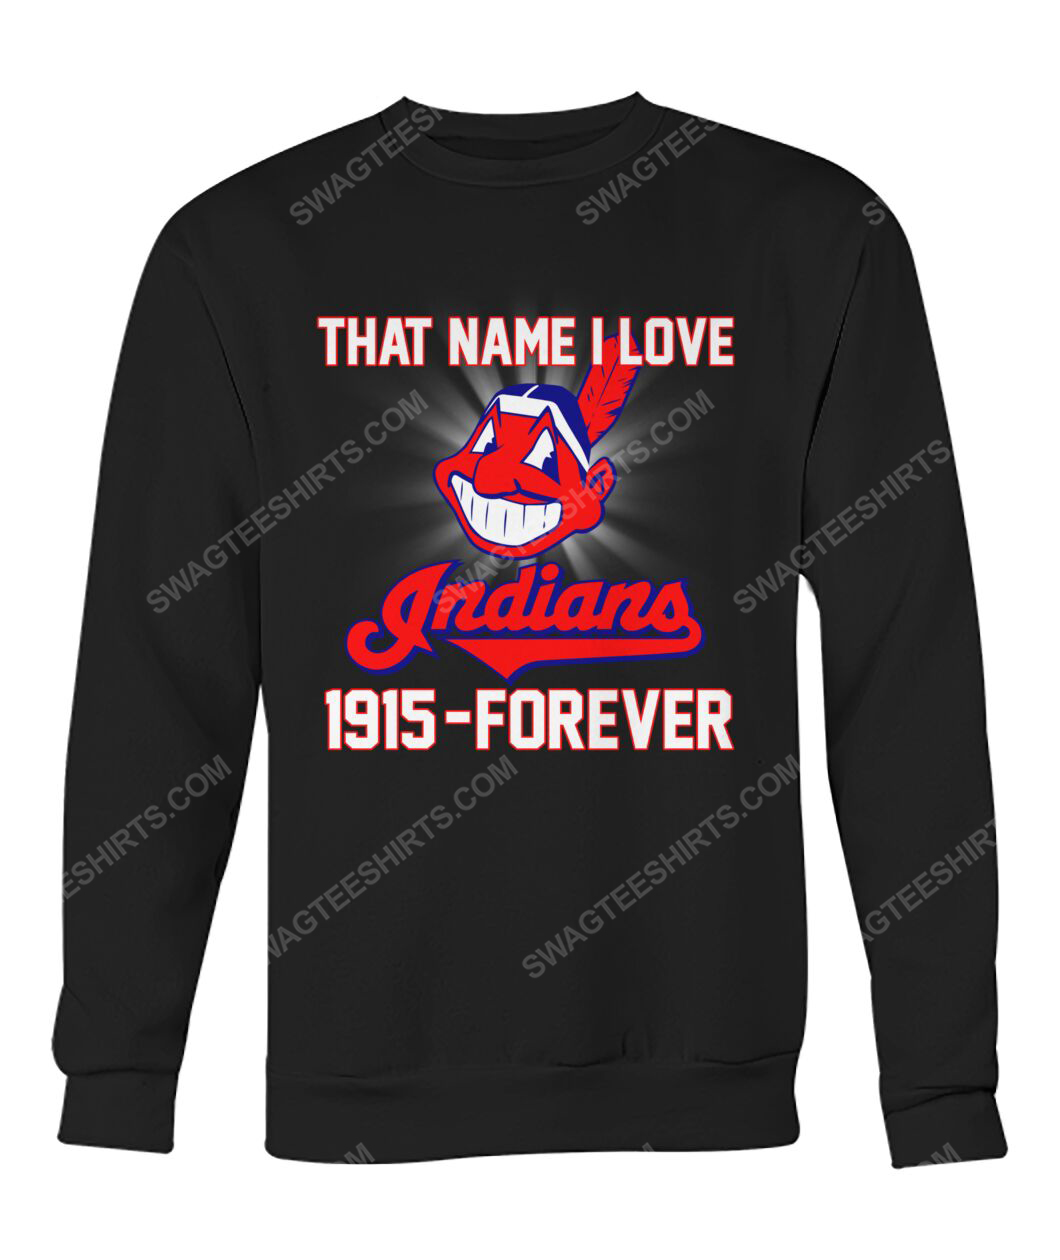 That name i love cleveland indians 1915 forever sweatshirt 1